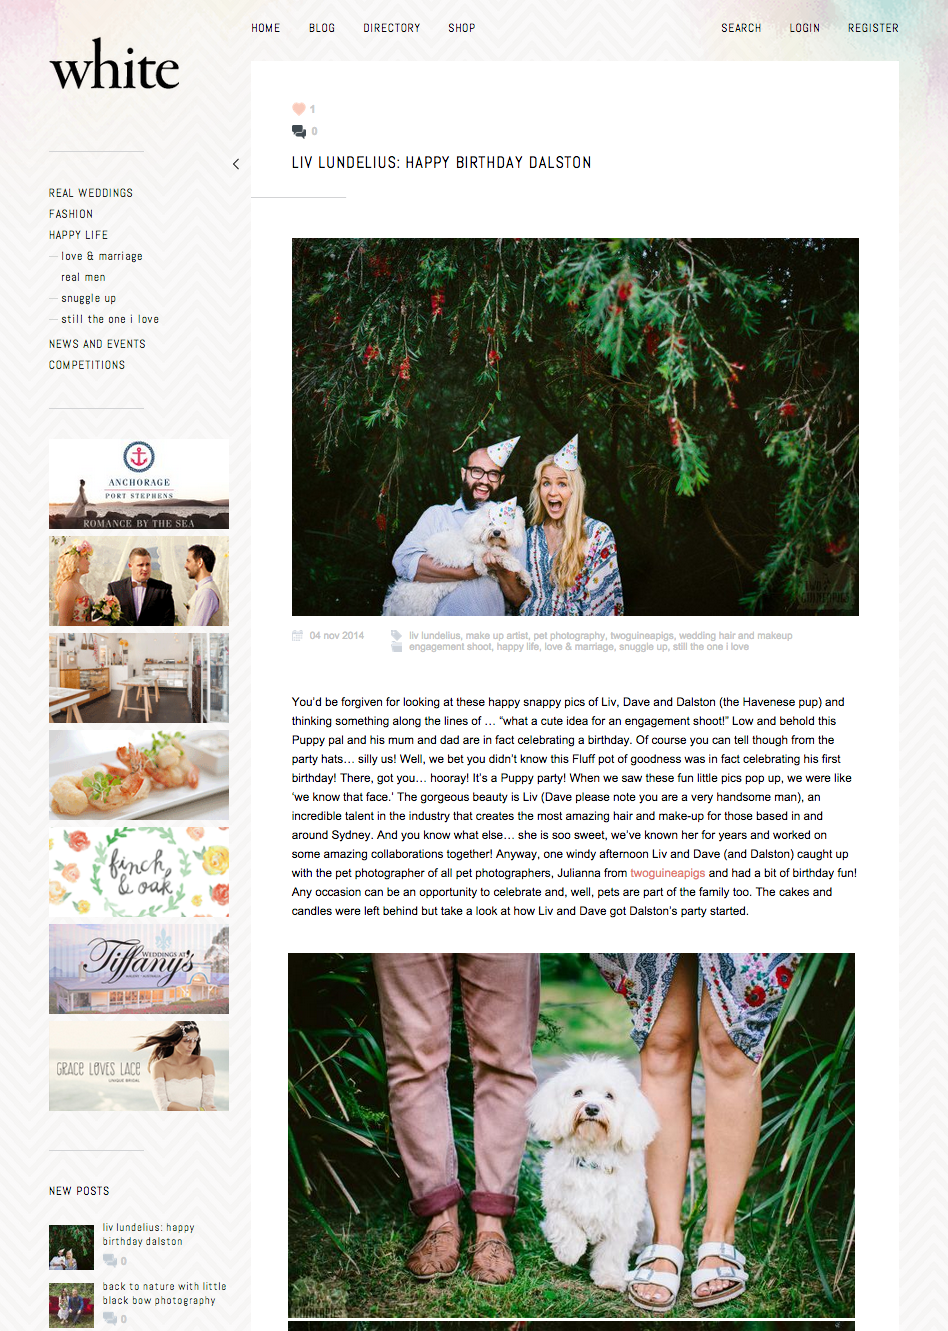 twoguineapigs_pet_photography_dalston_birthday_liv_lundelius_family_session_havanese_white_magazine_feature